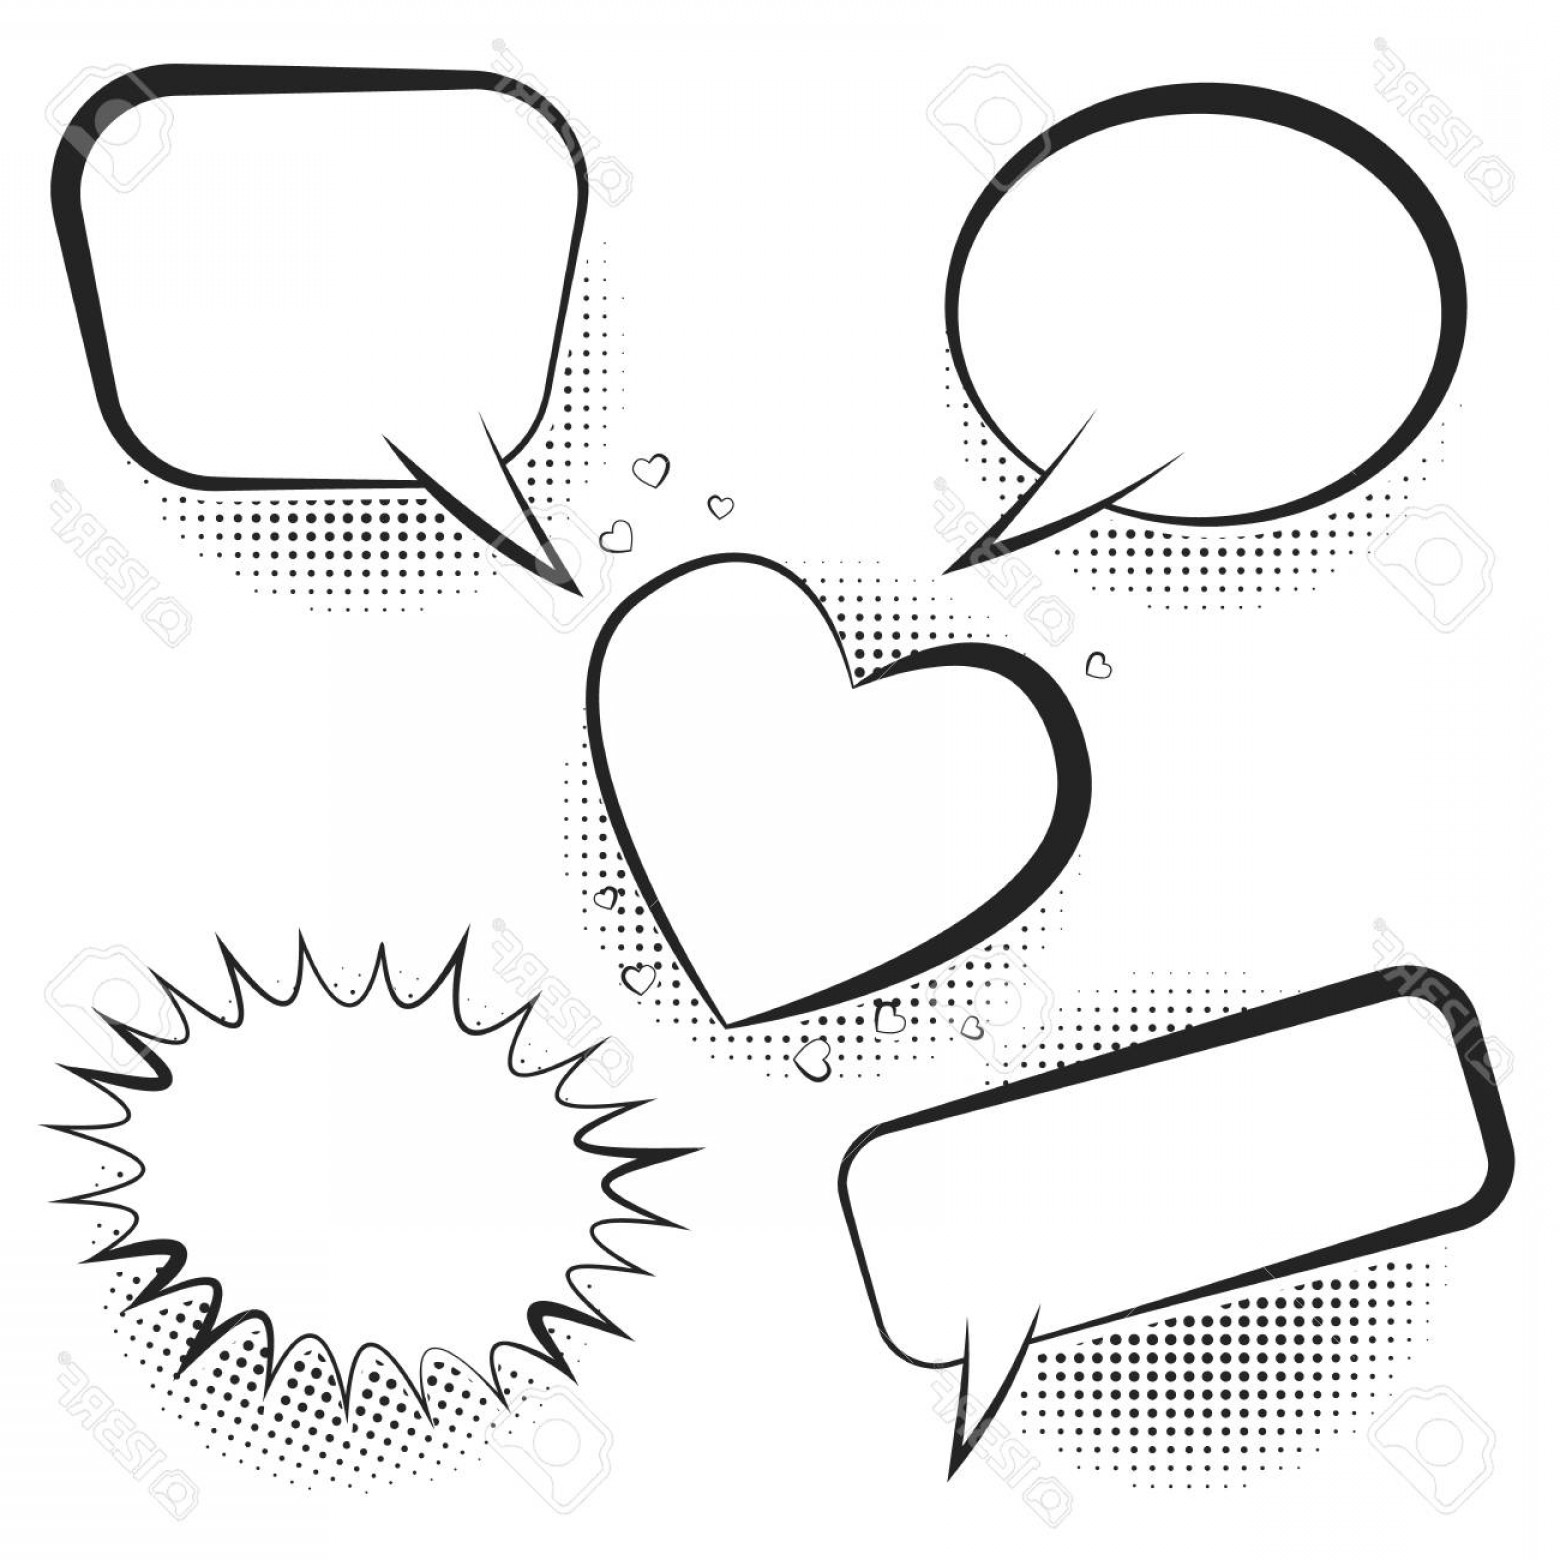 Vector Art Black And White Bubbles: Photostock Vector Set Of White Empty Retro Comic Speech Bubbles With Black Halftone Shadow In Pop Art Style Black Outl